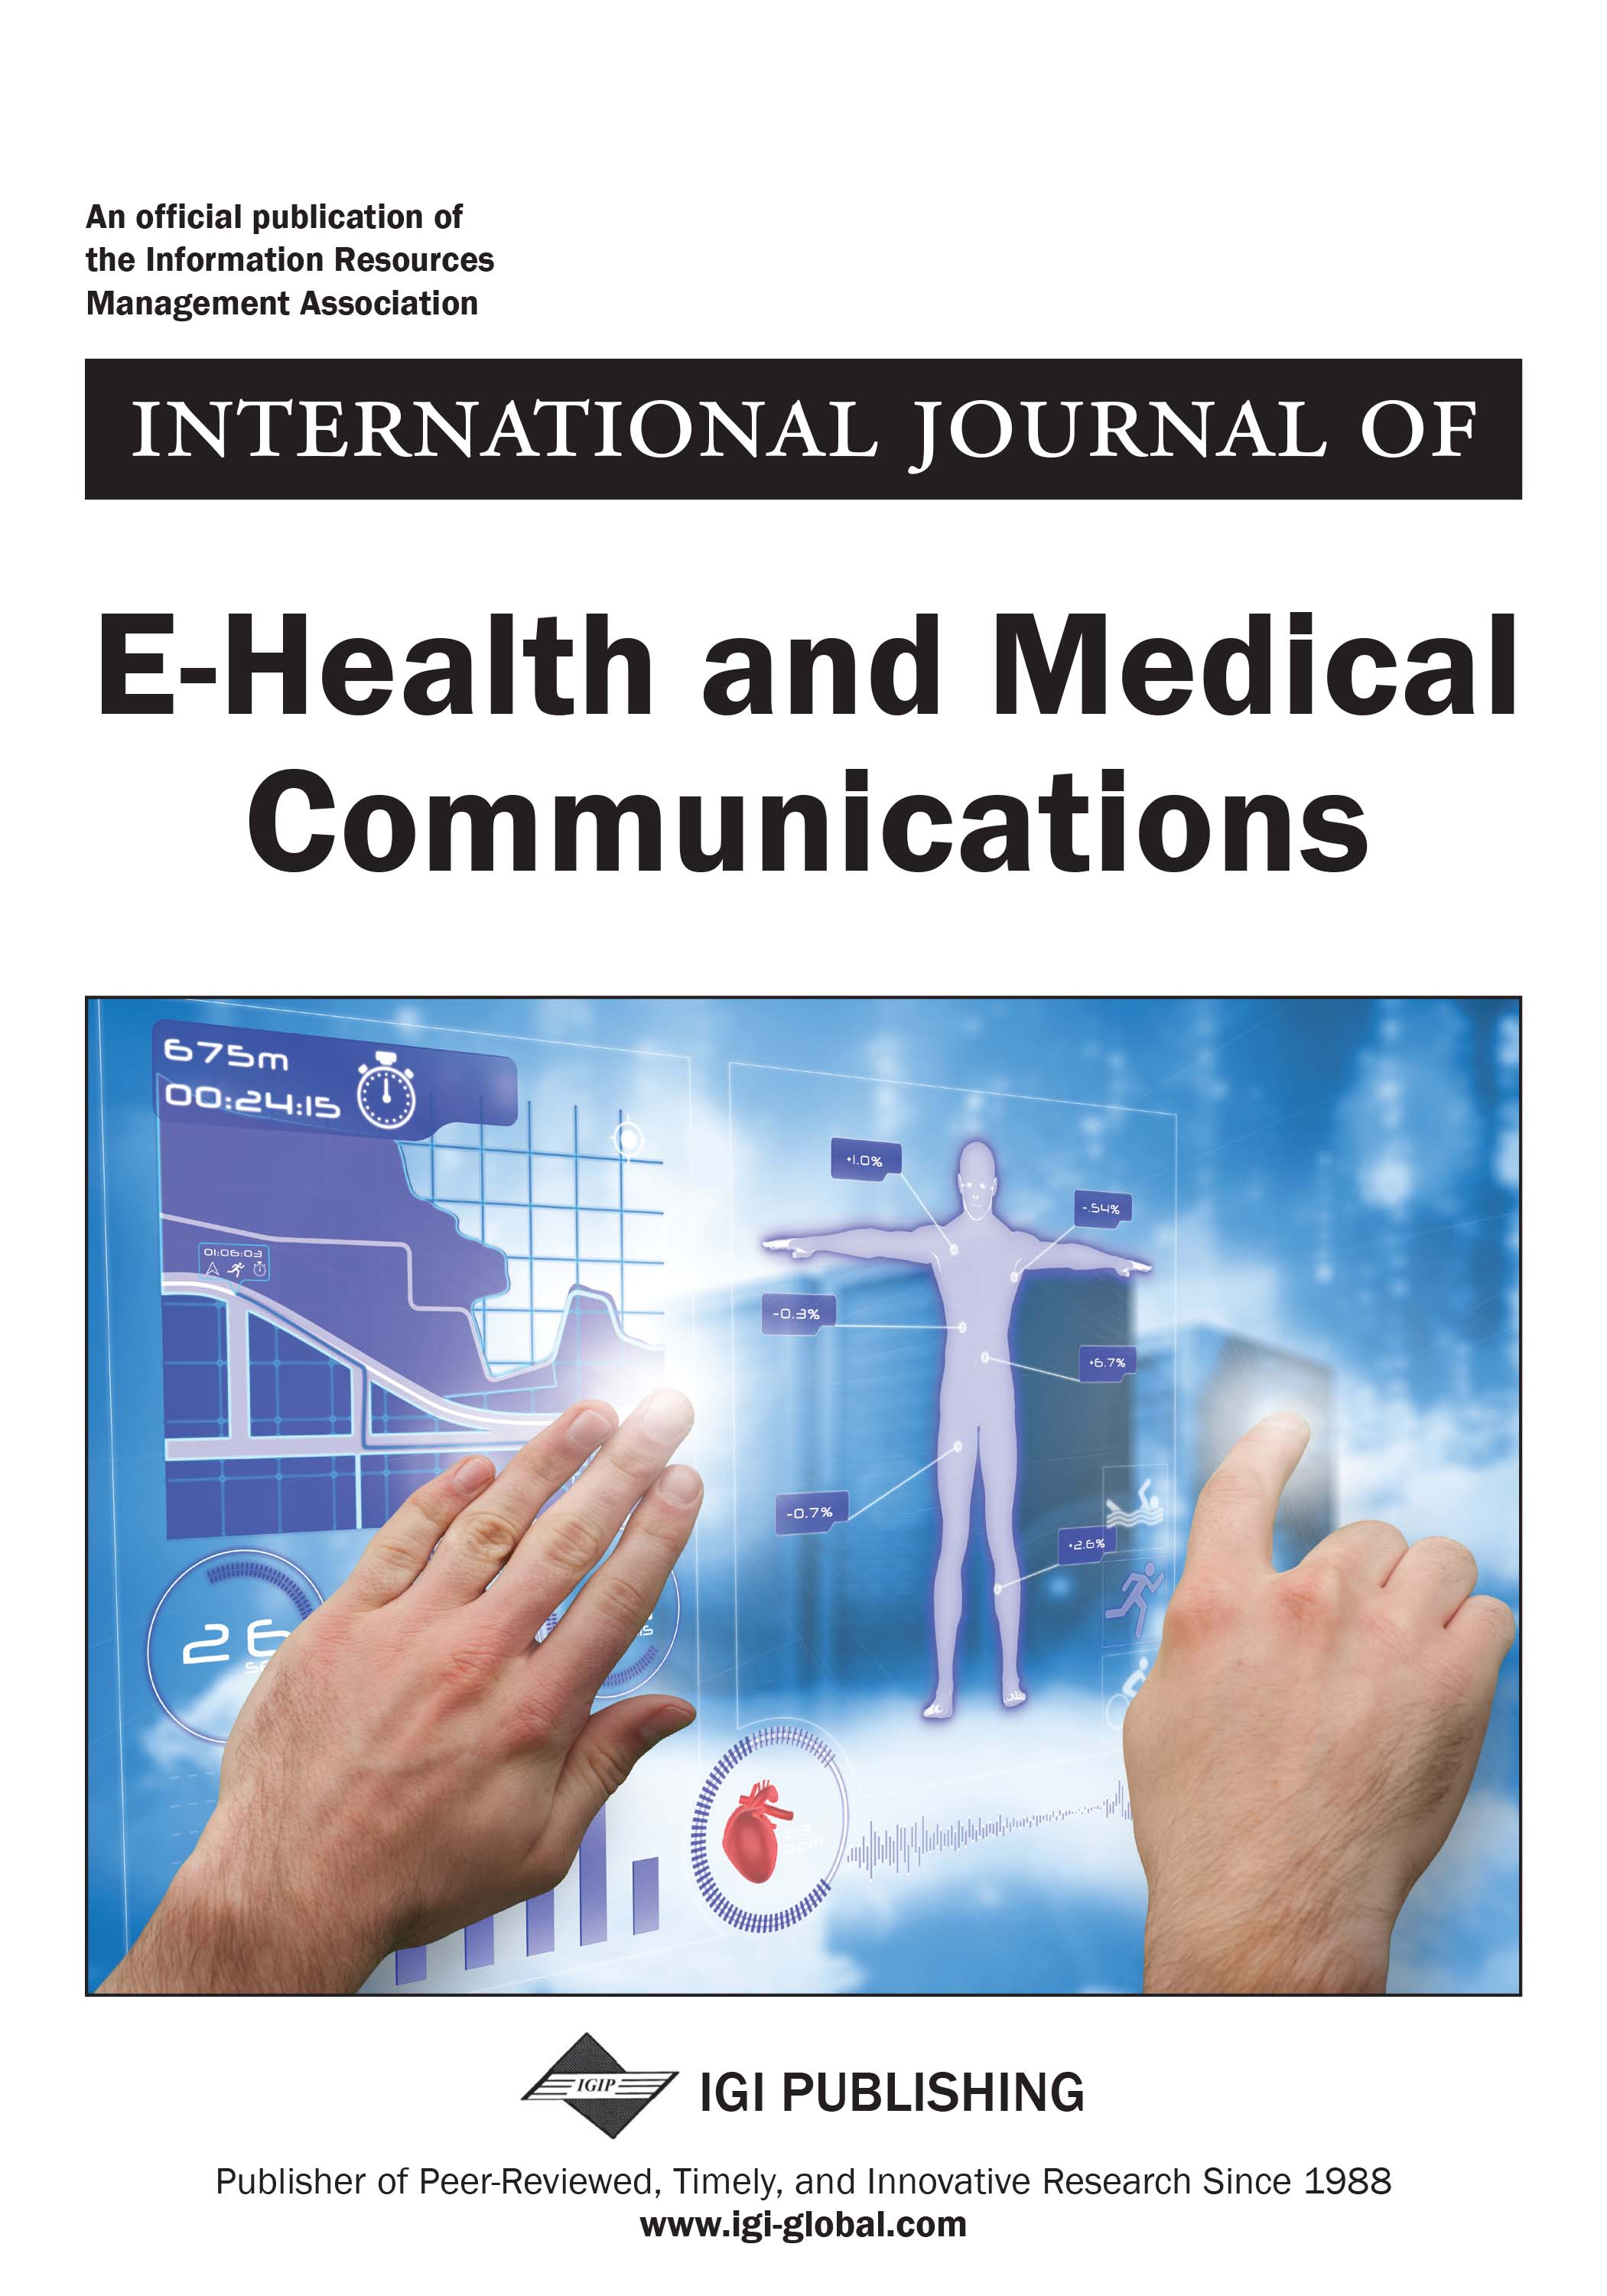 International Journal of E-Health and Medical Communications (IJEHMC) 2018 Inaugural Journal